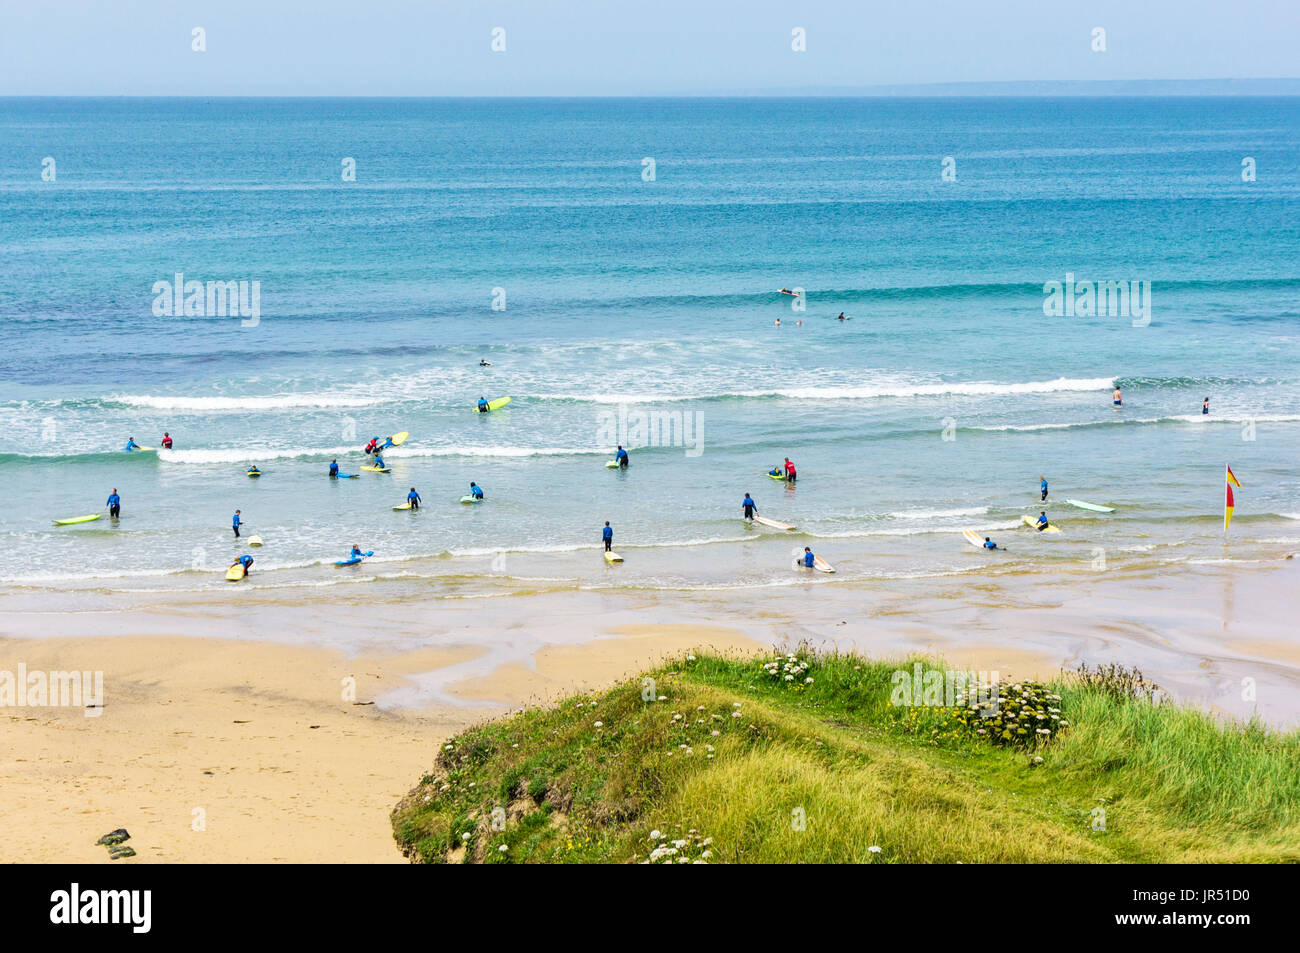 Surfing school with people learning to surf at Poldhu Cove UK beach, Cornwall, UK - Stock Image